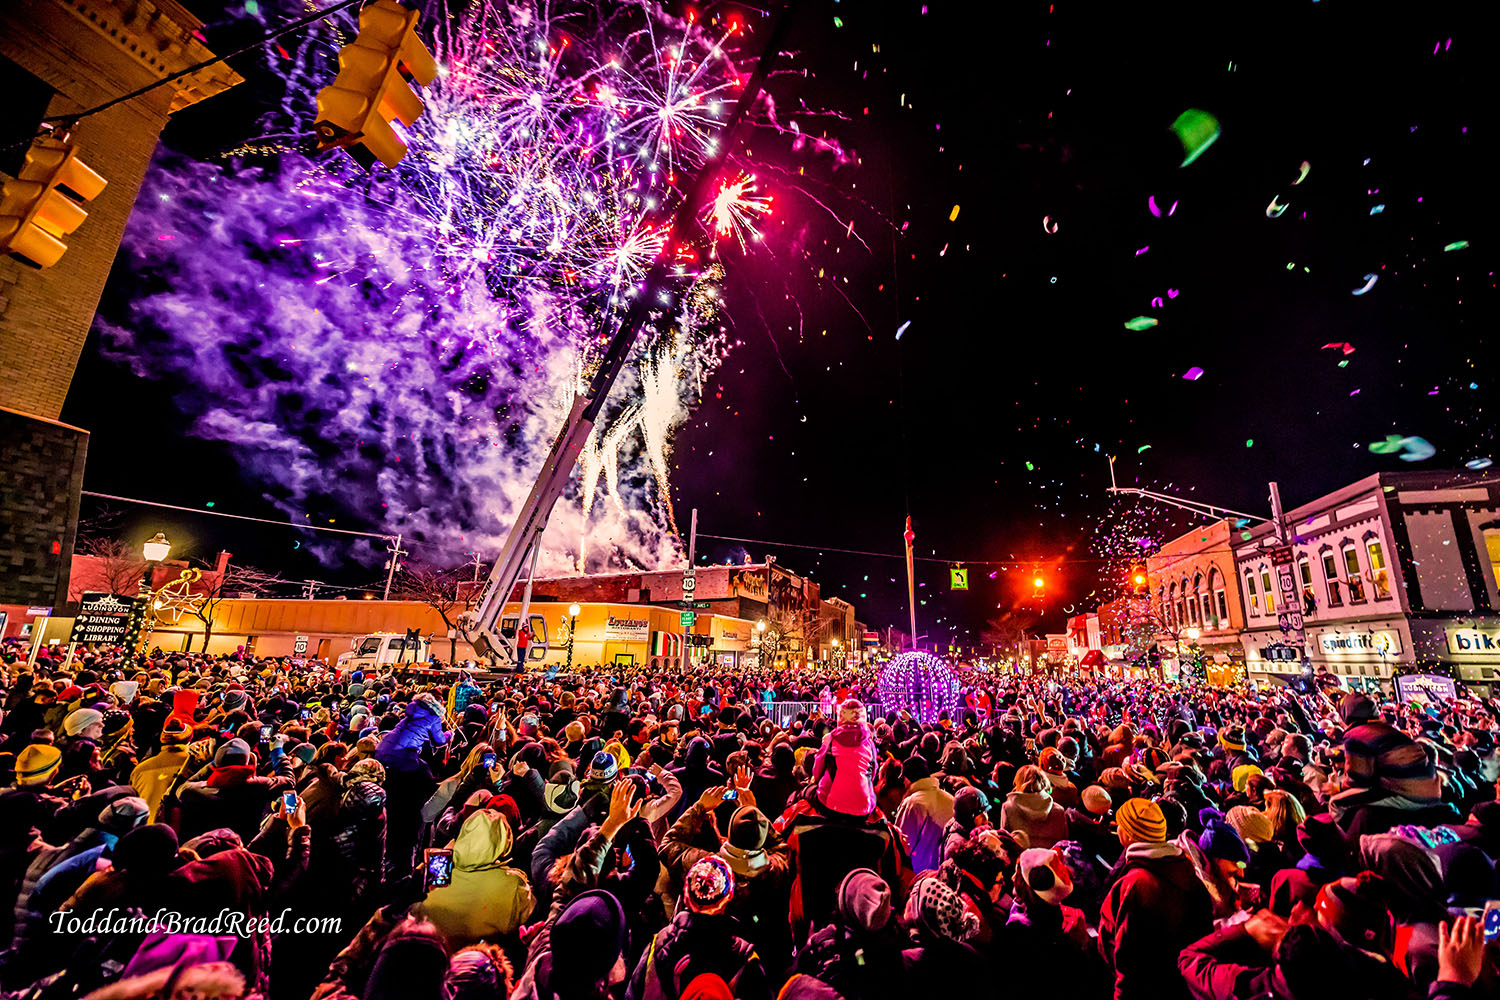 Todd Reed_0763_Ludington Celebrates 2017_Ball drop in downtown Ludington_1_01_2017_1500px_Website Watermarked.jpg